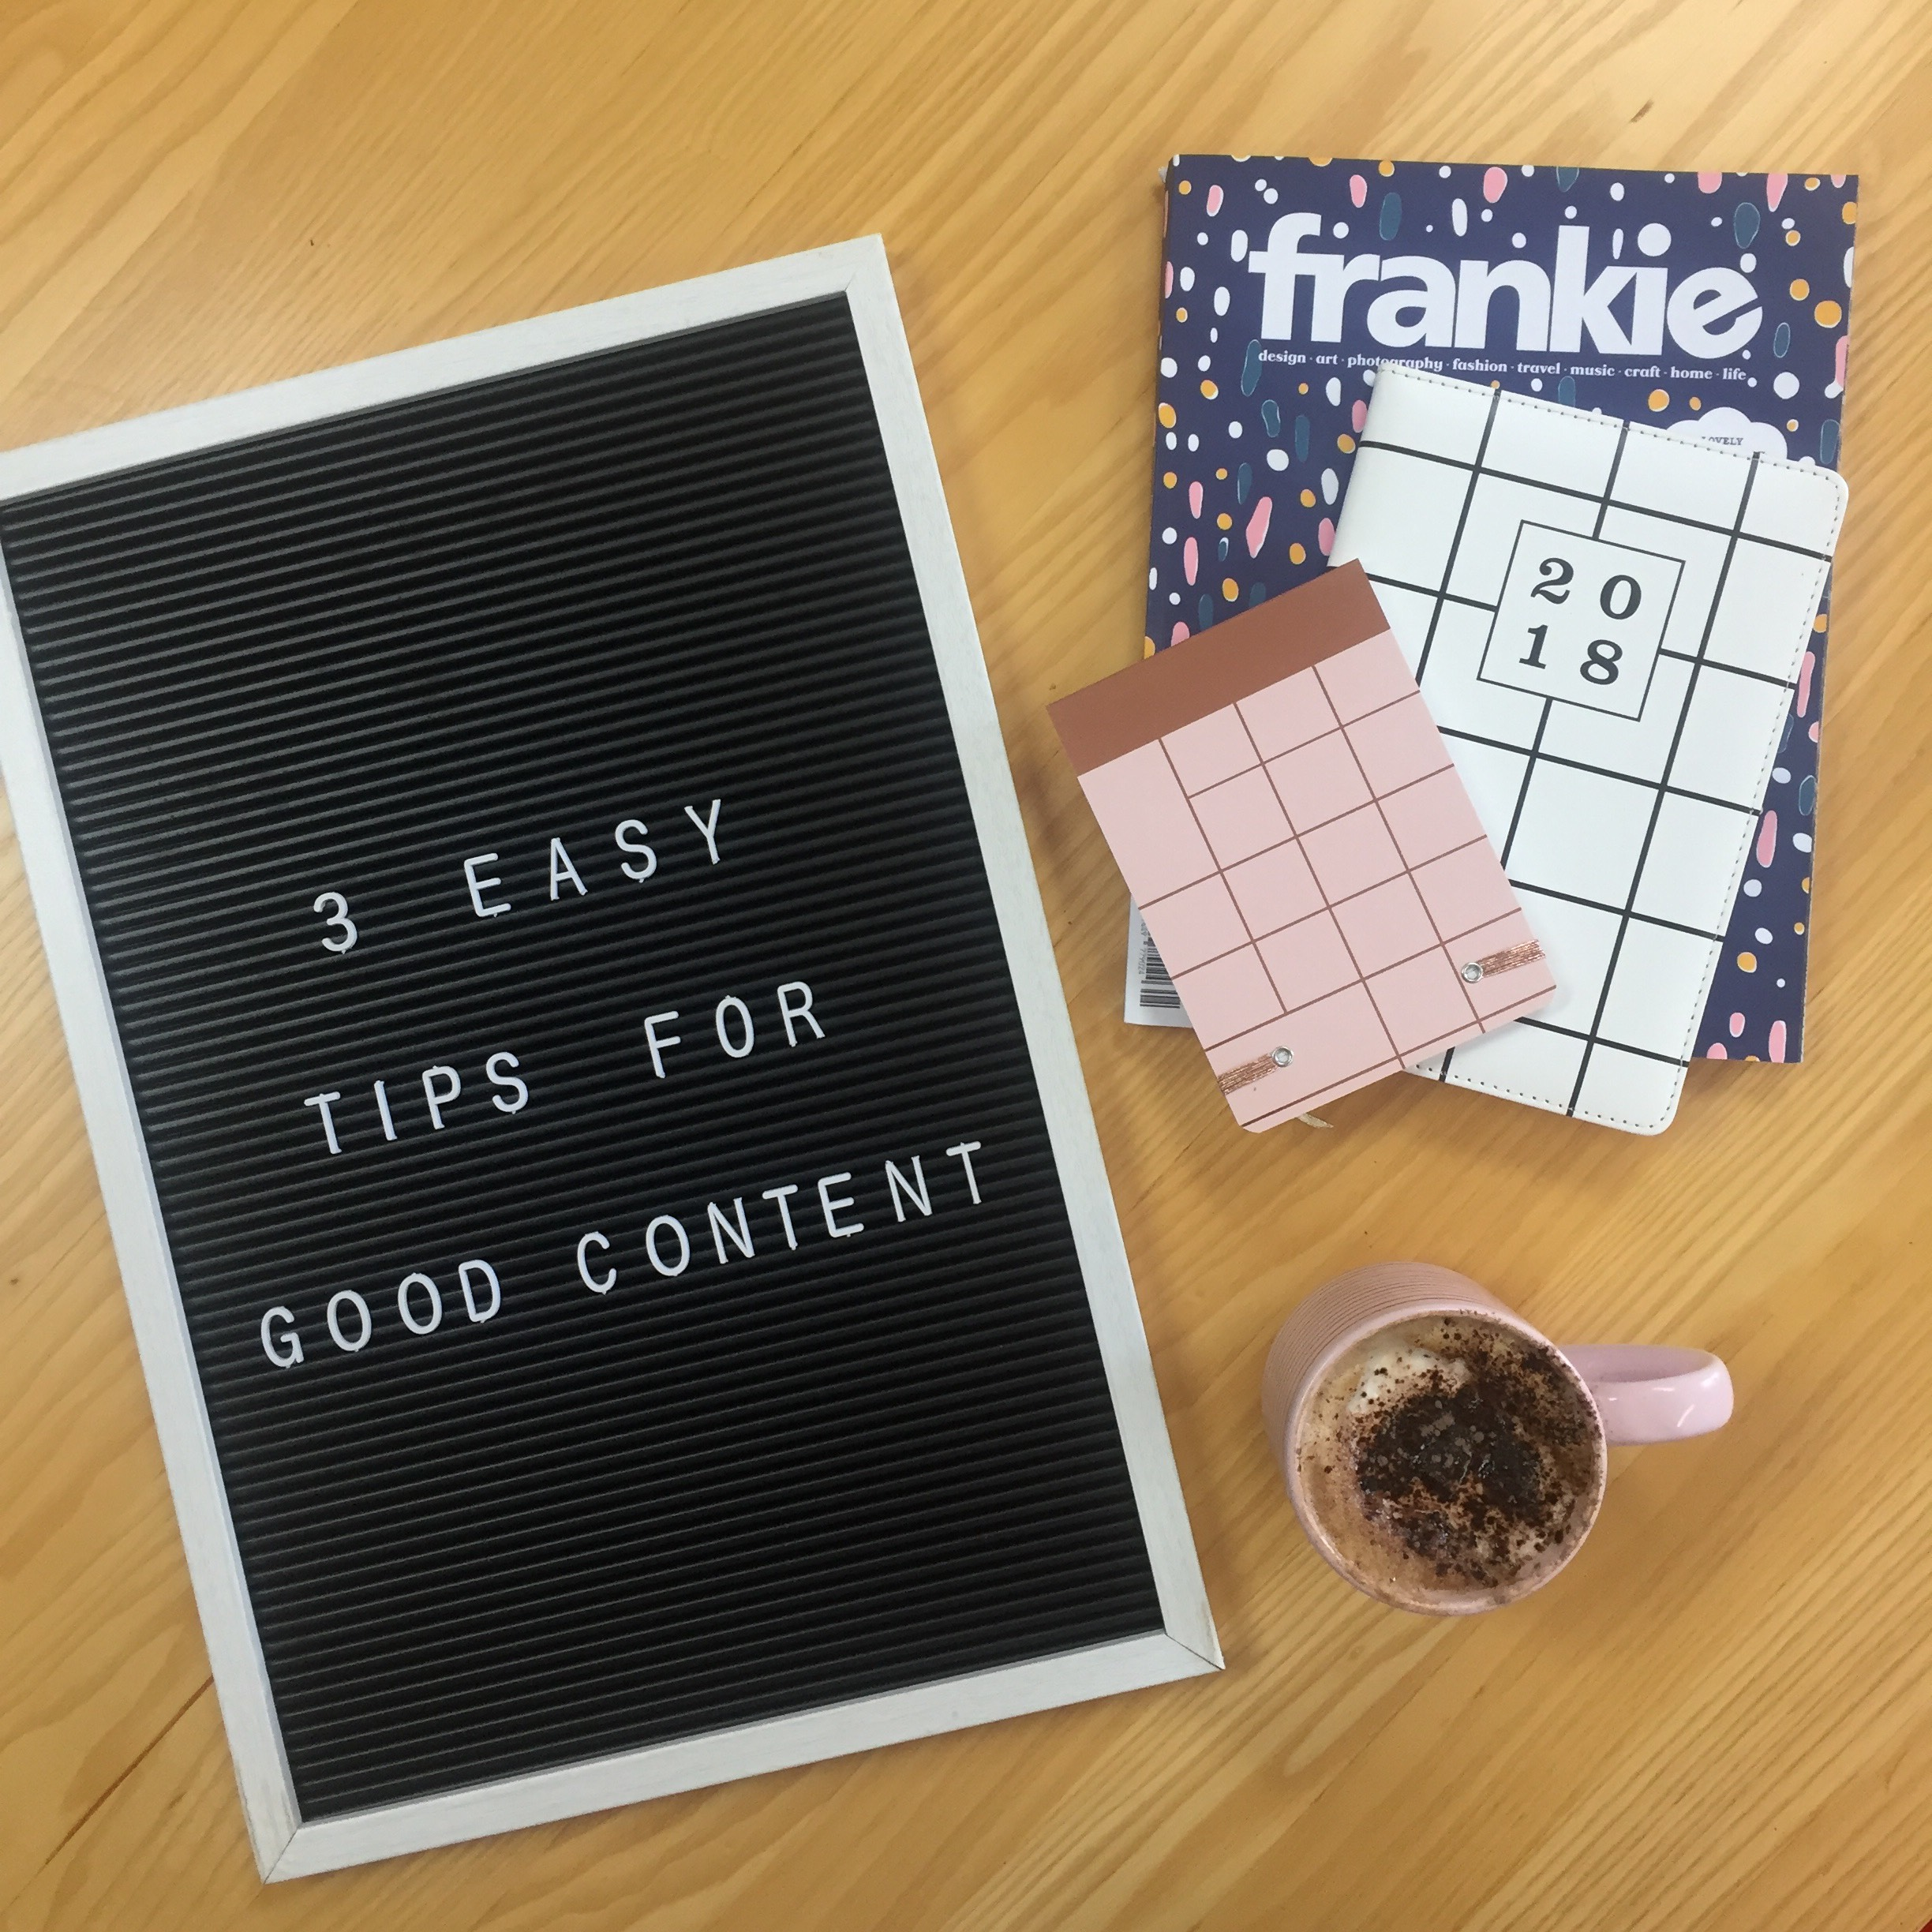 3 Easy Tips for Good Content